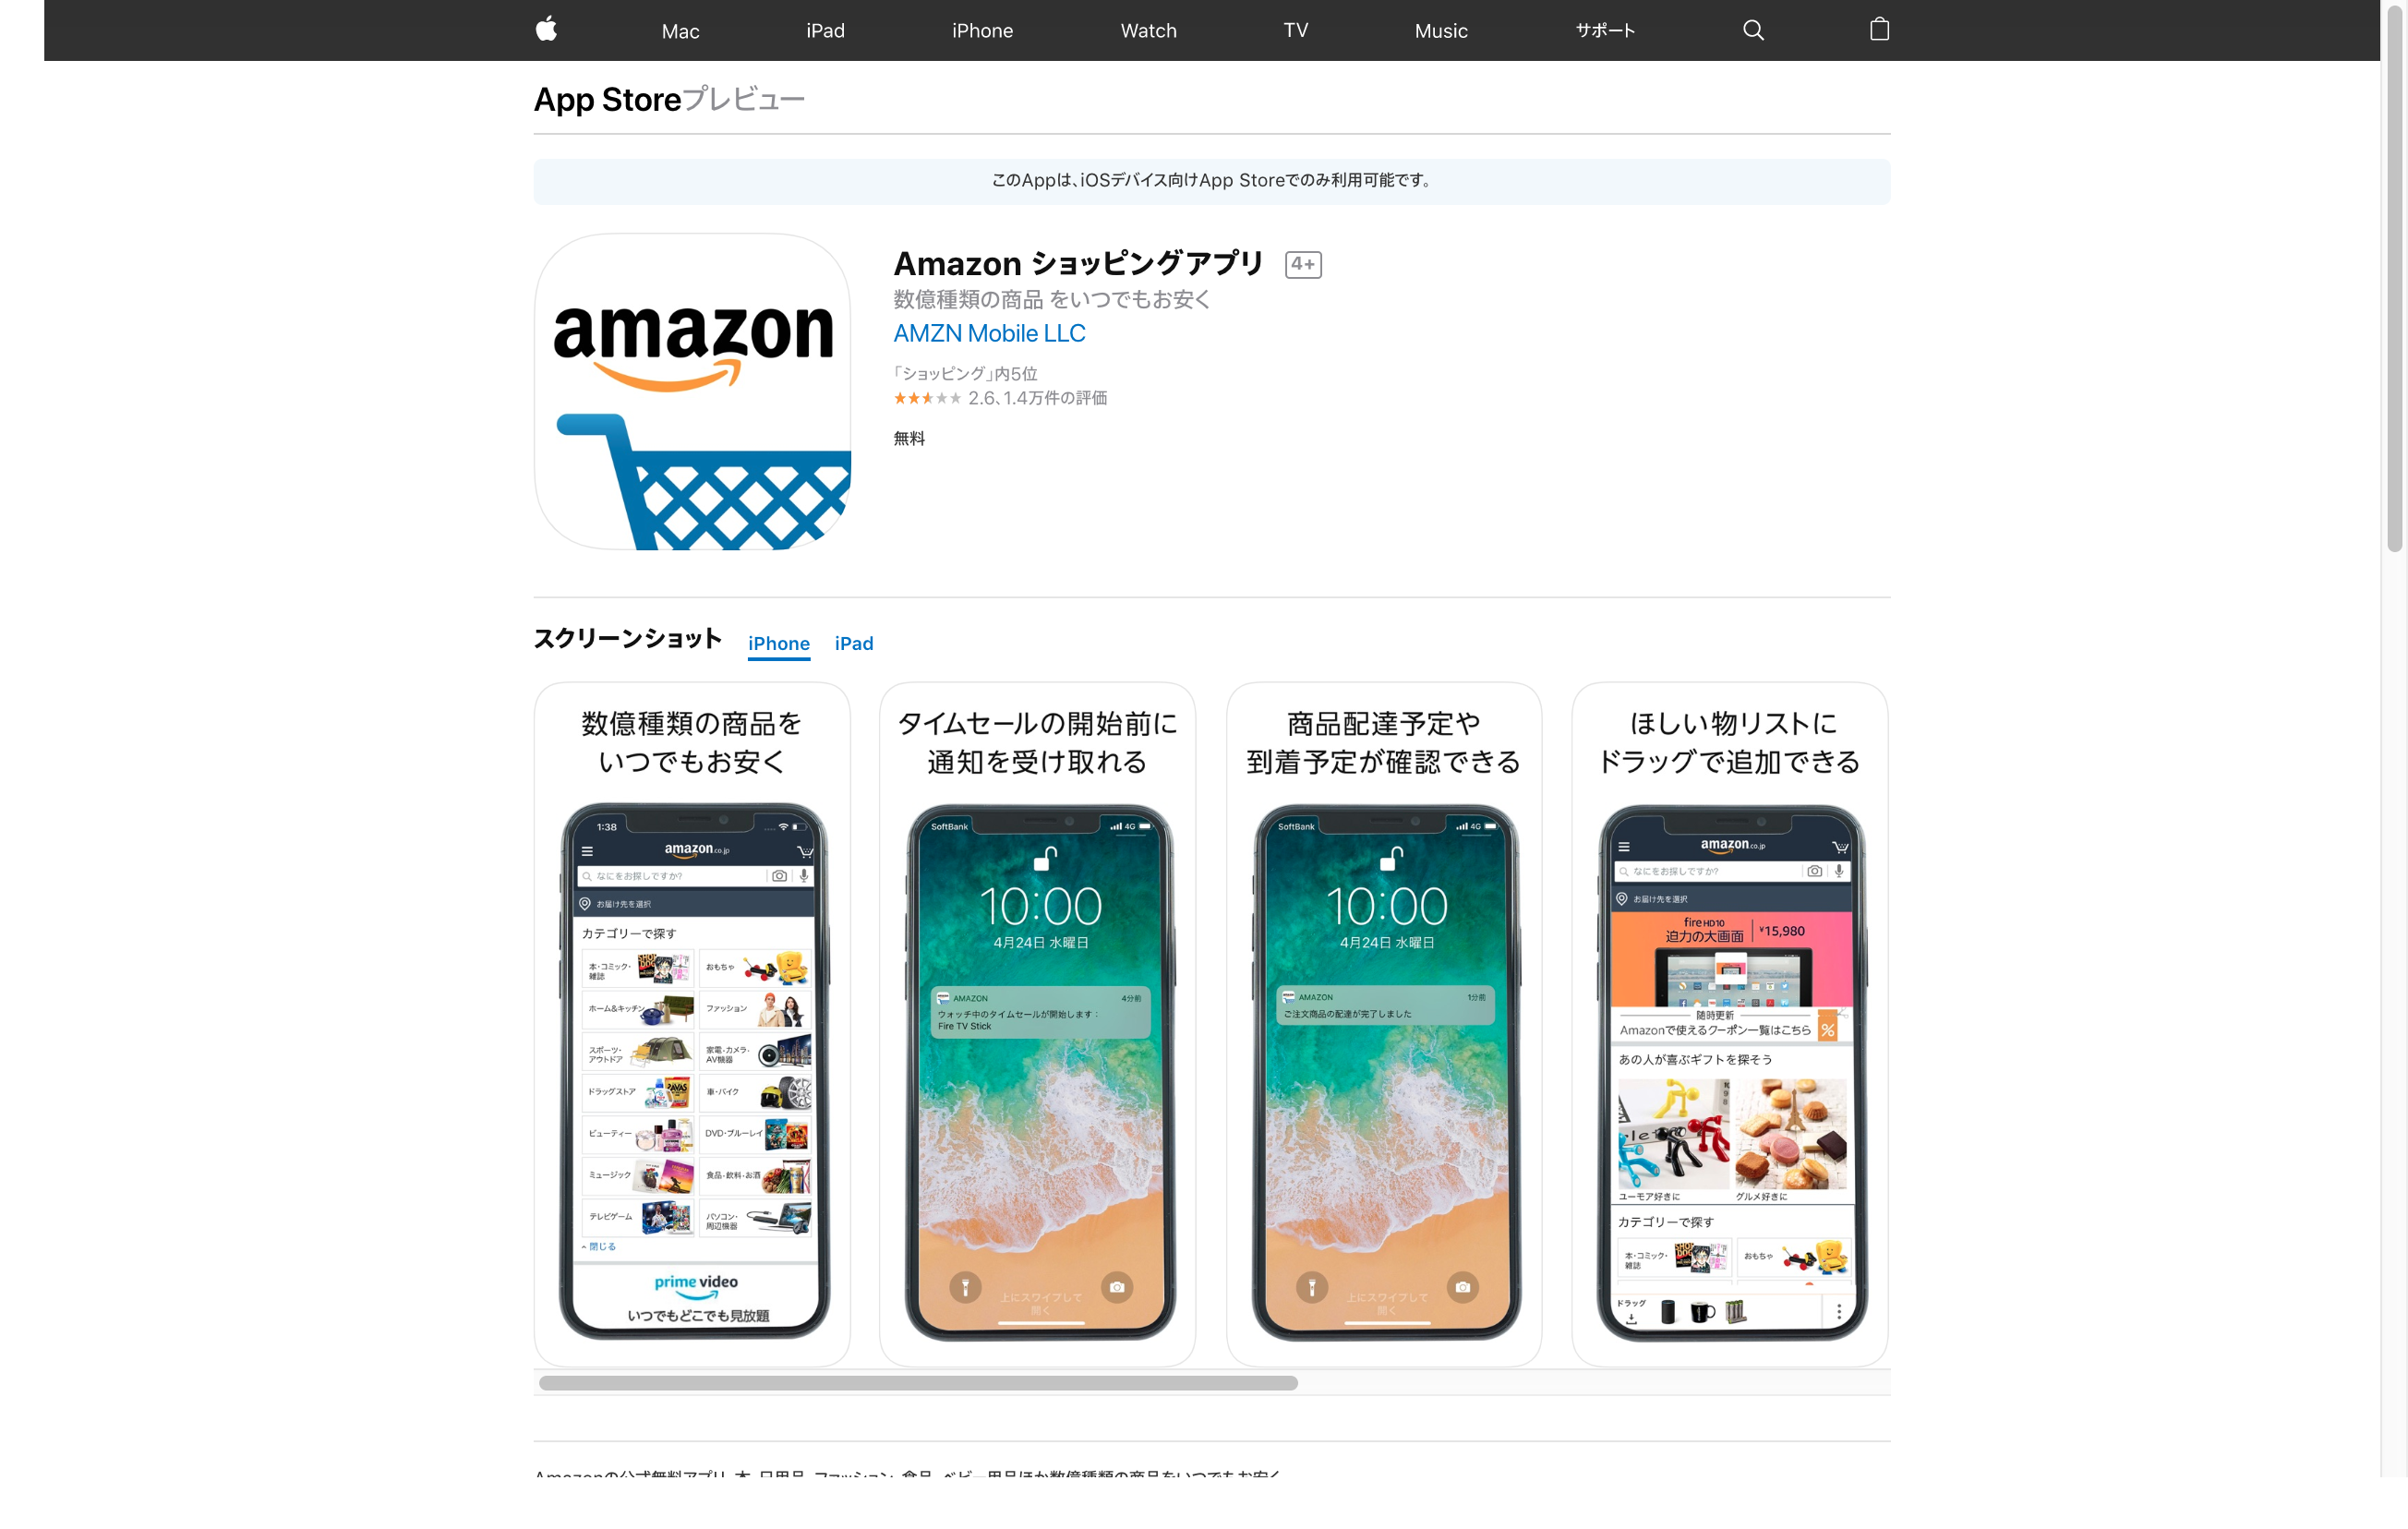 iOS(iPhone & iPad)用の「Amazon」アプリ